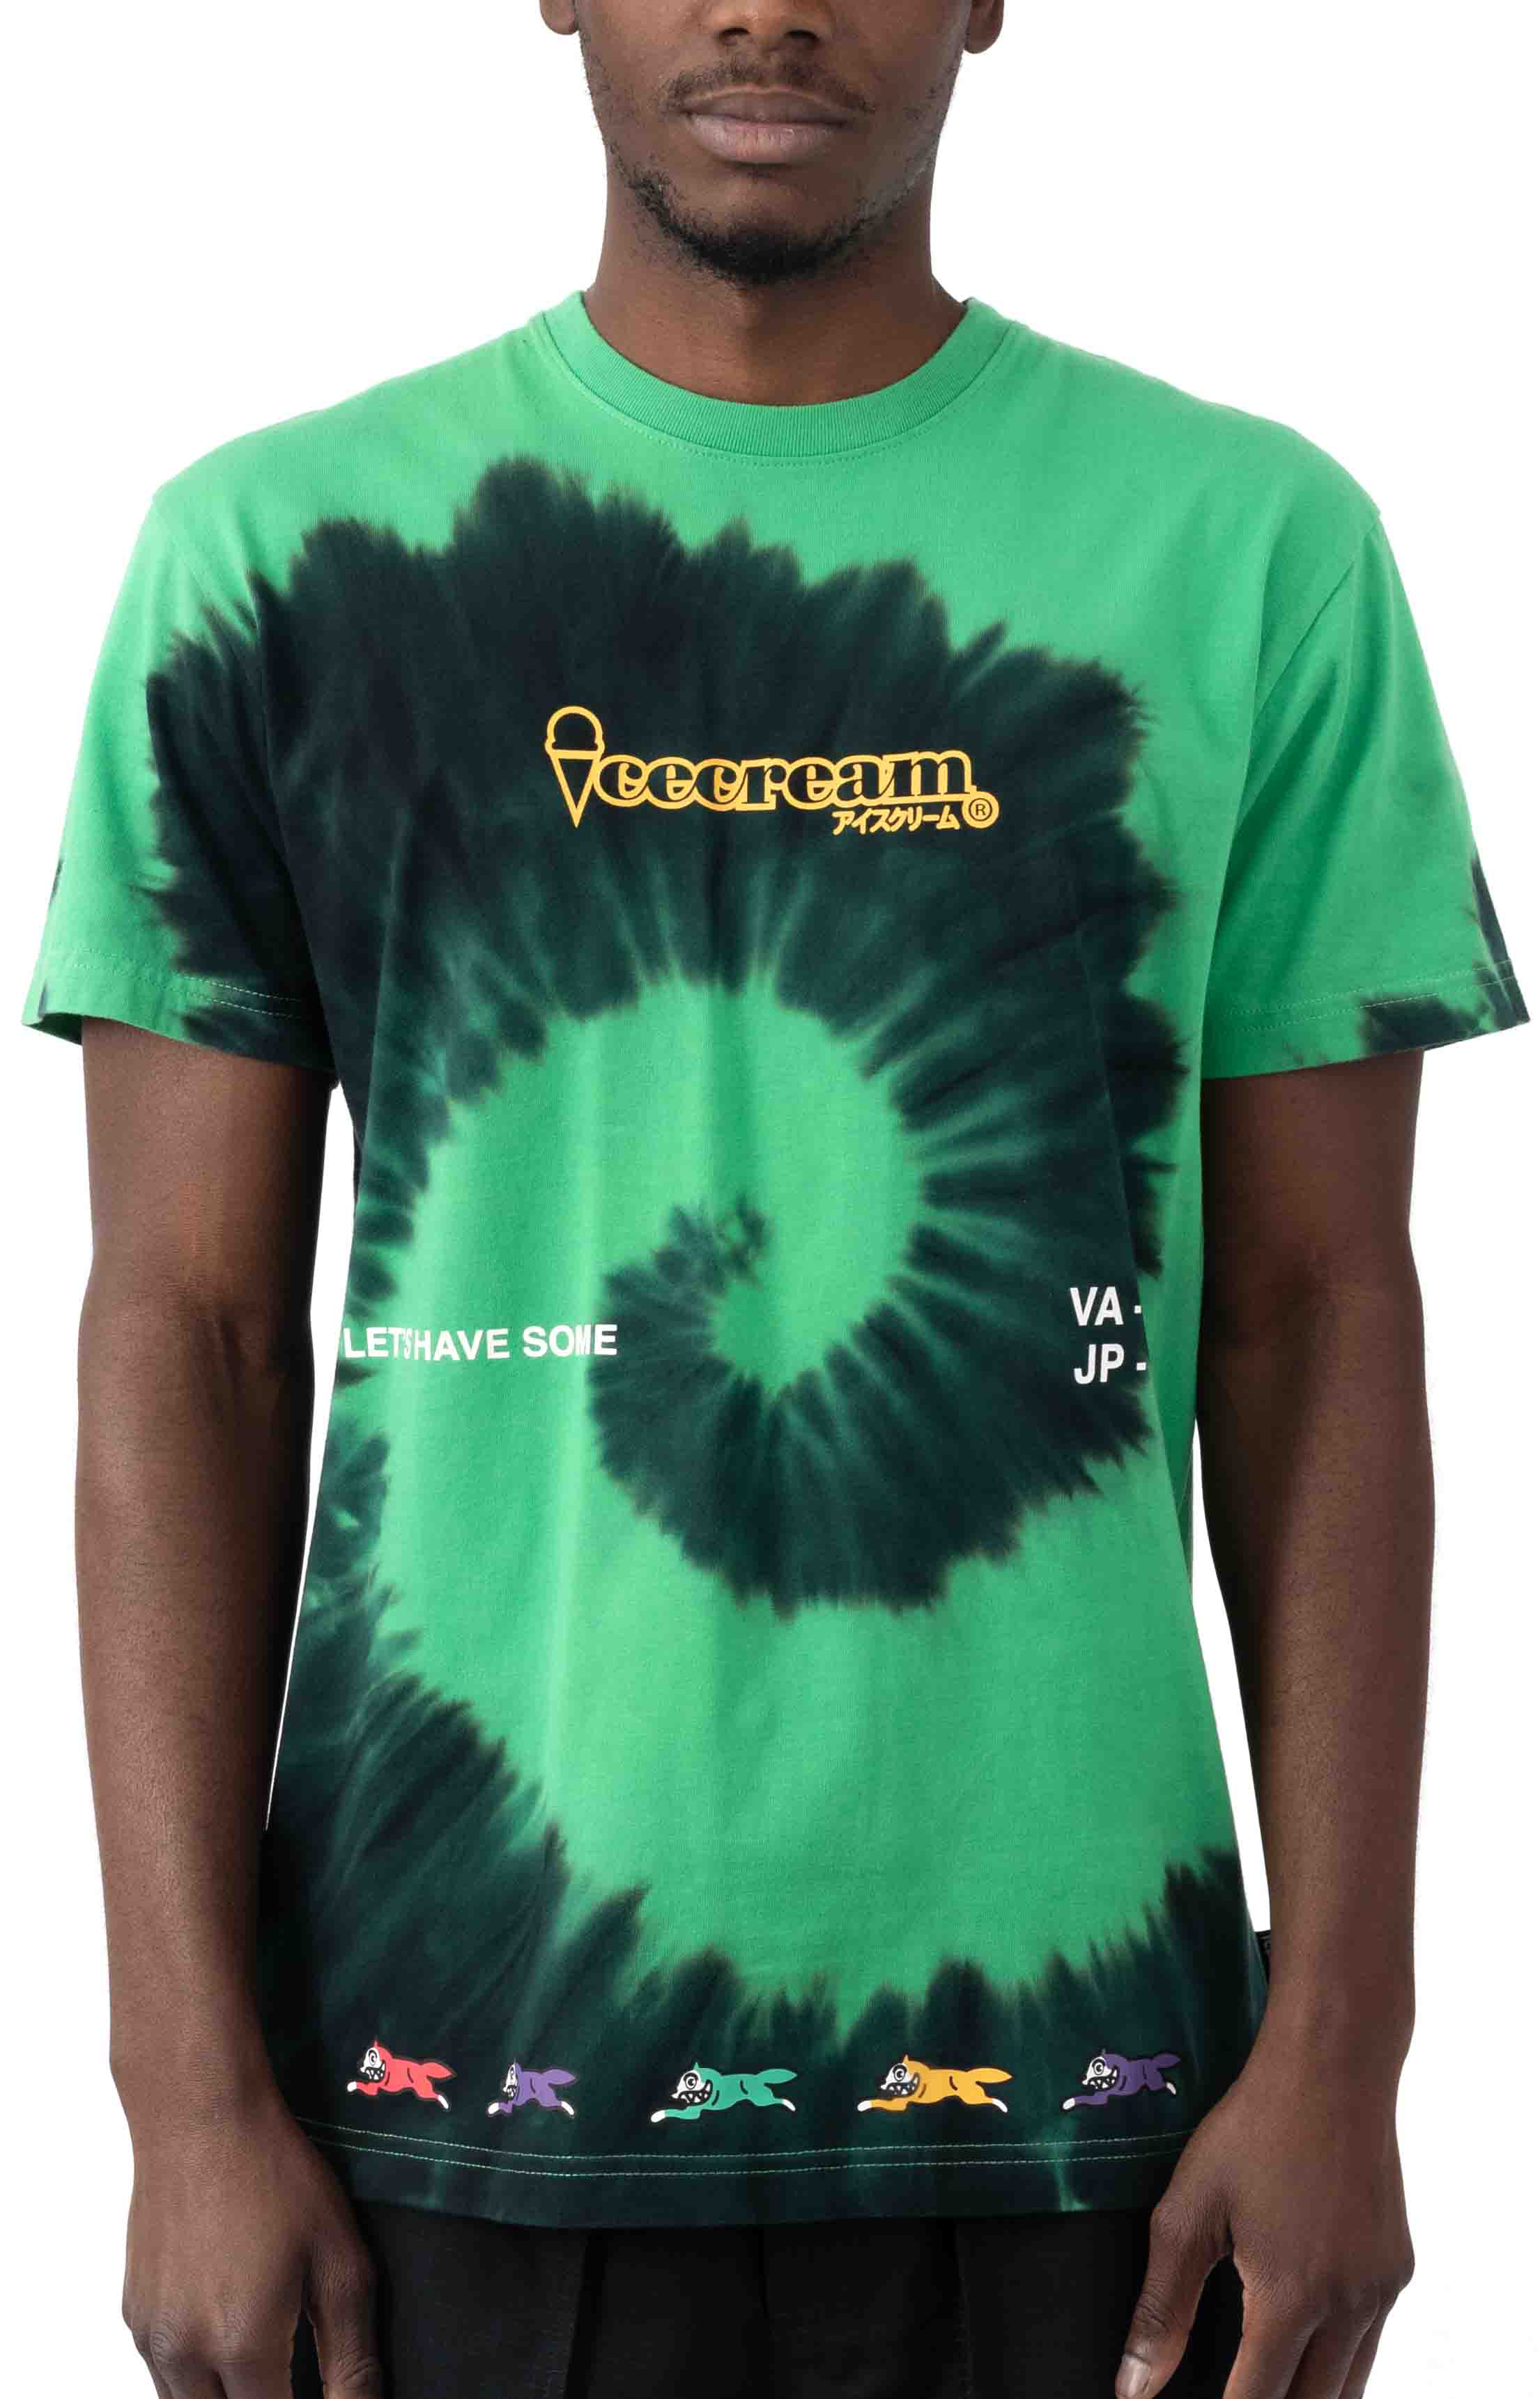 Let's Have Some SS Knit T-Shirt - Kelly Green